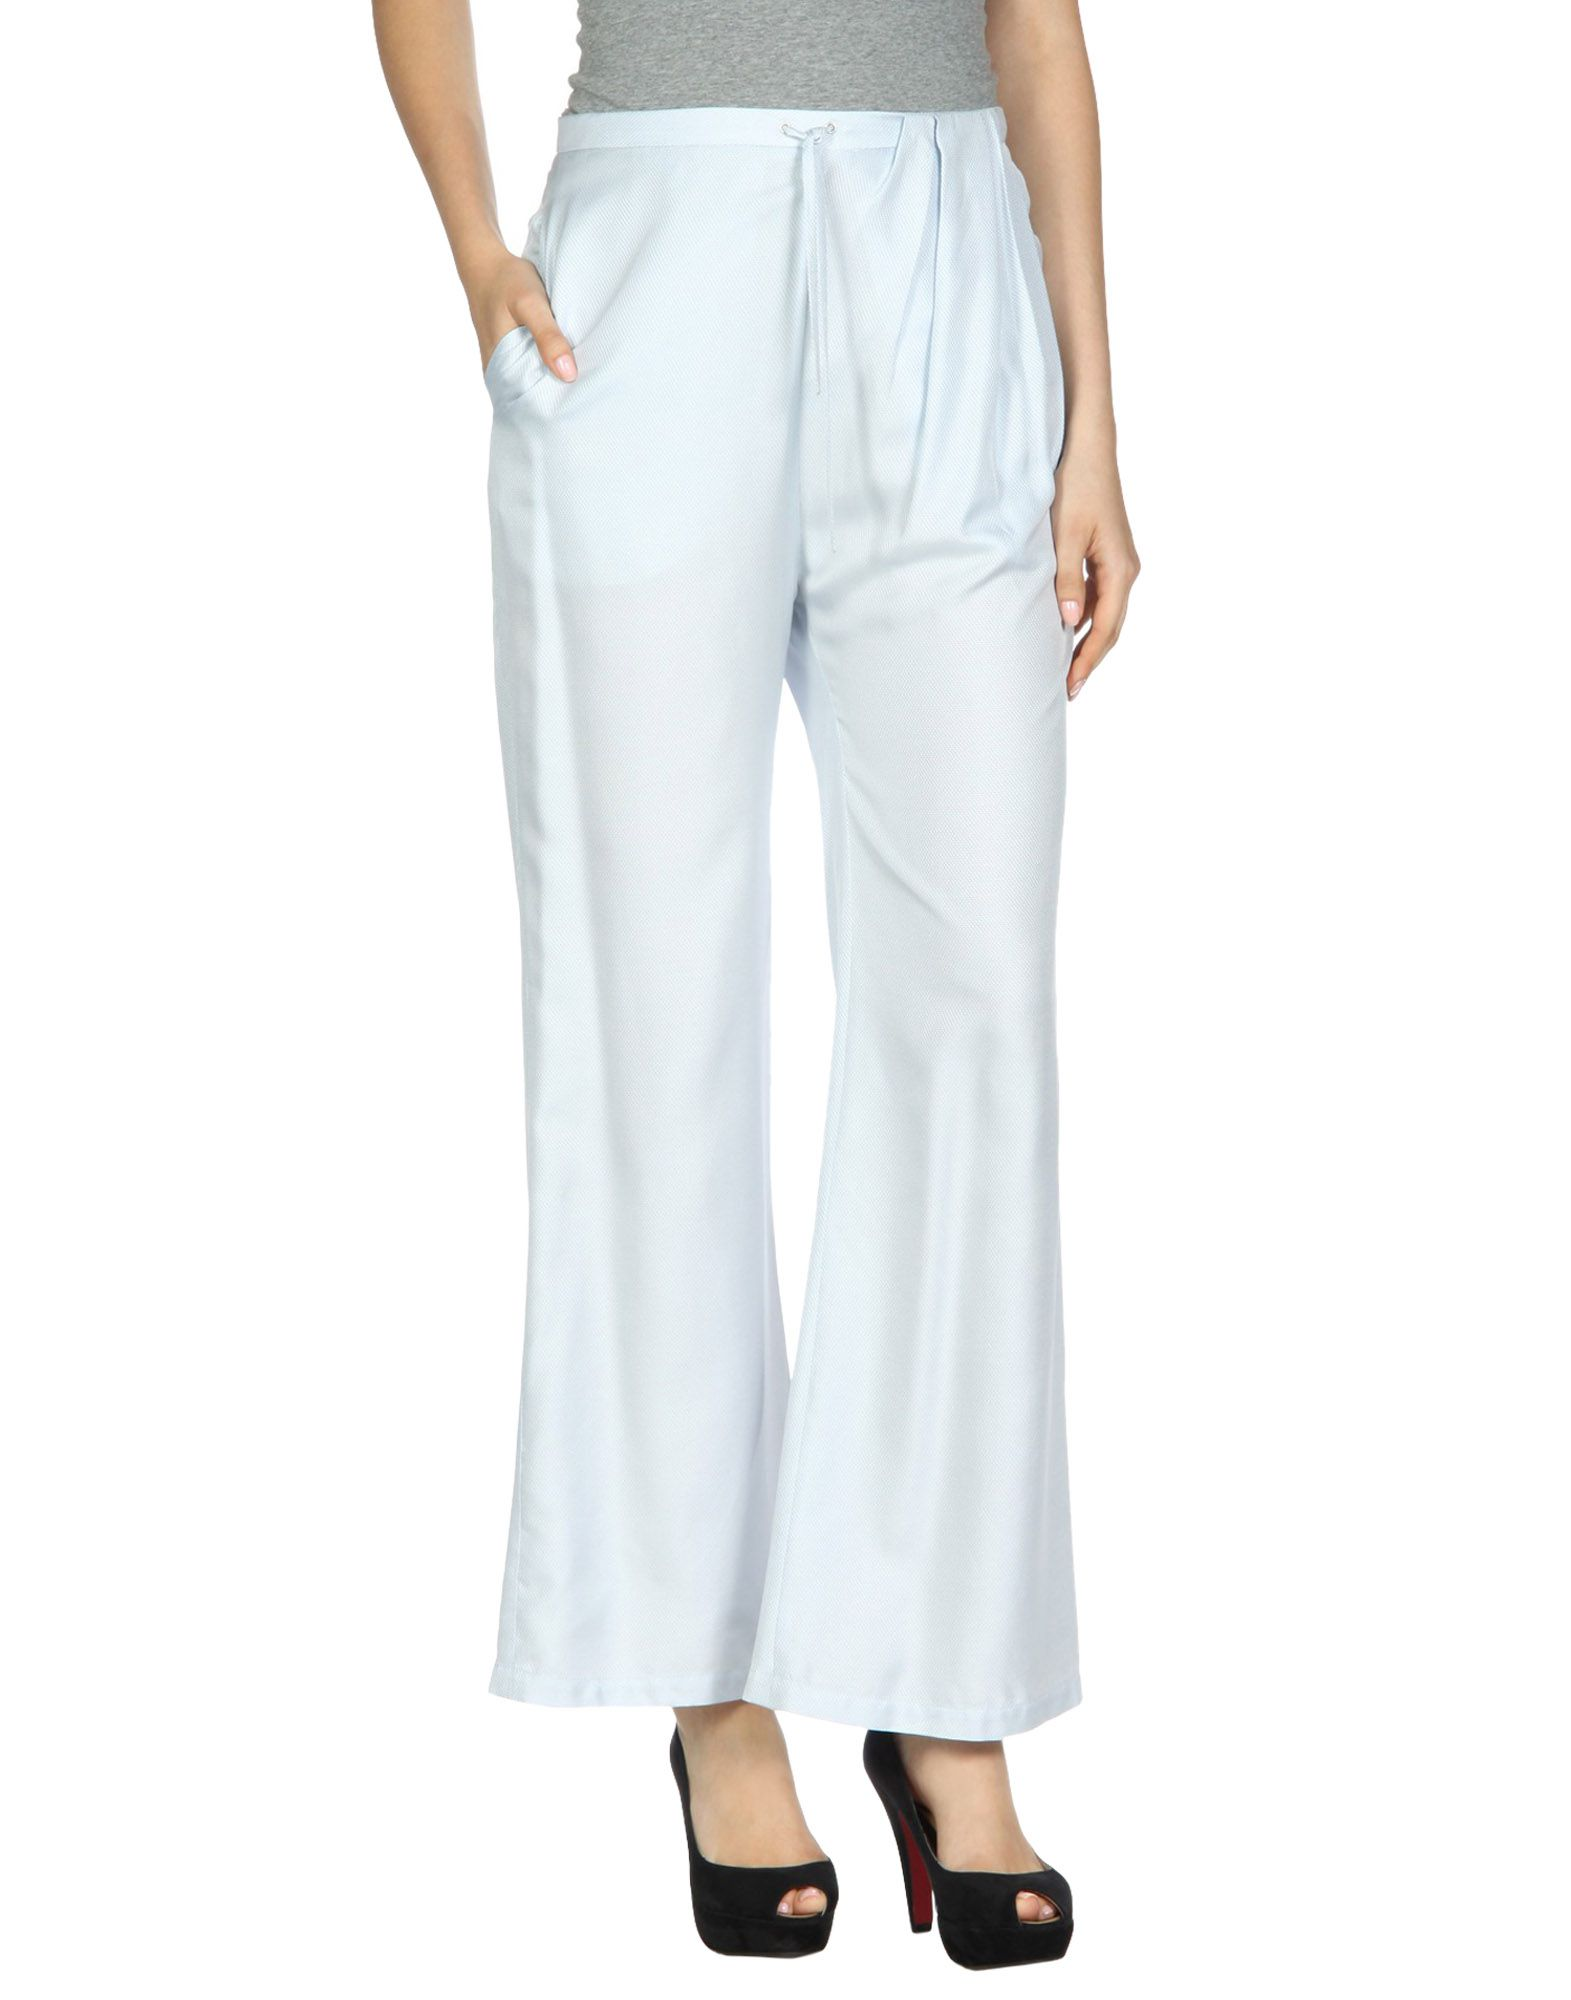 BACK Casual Pants in Sky Blue